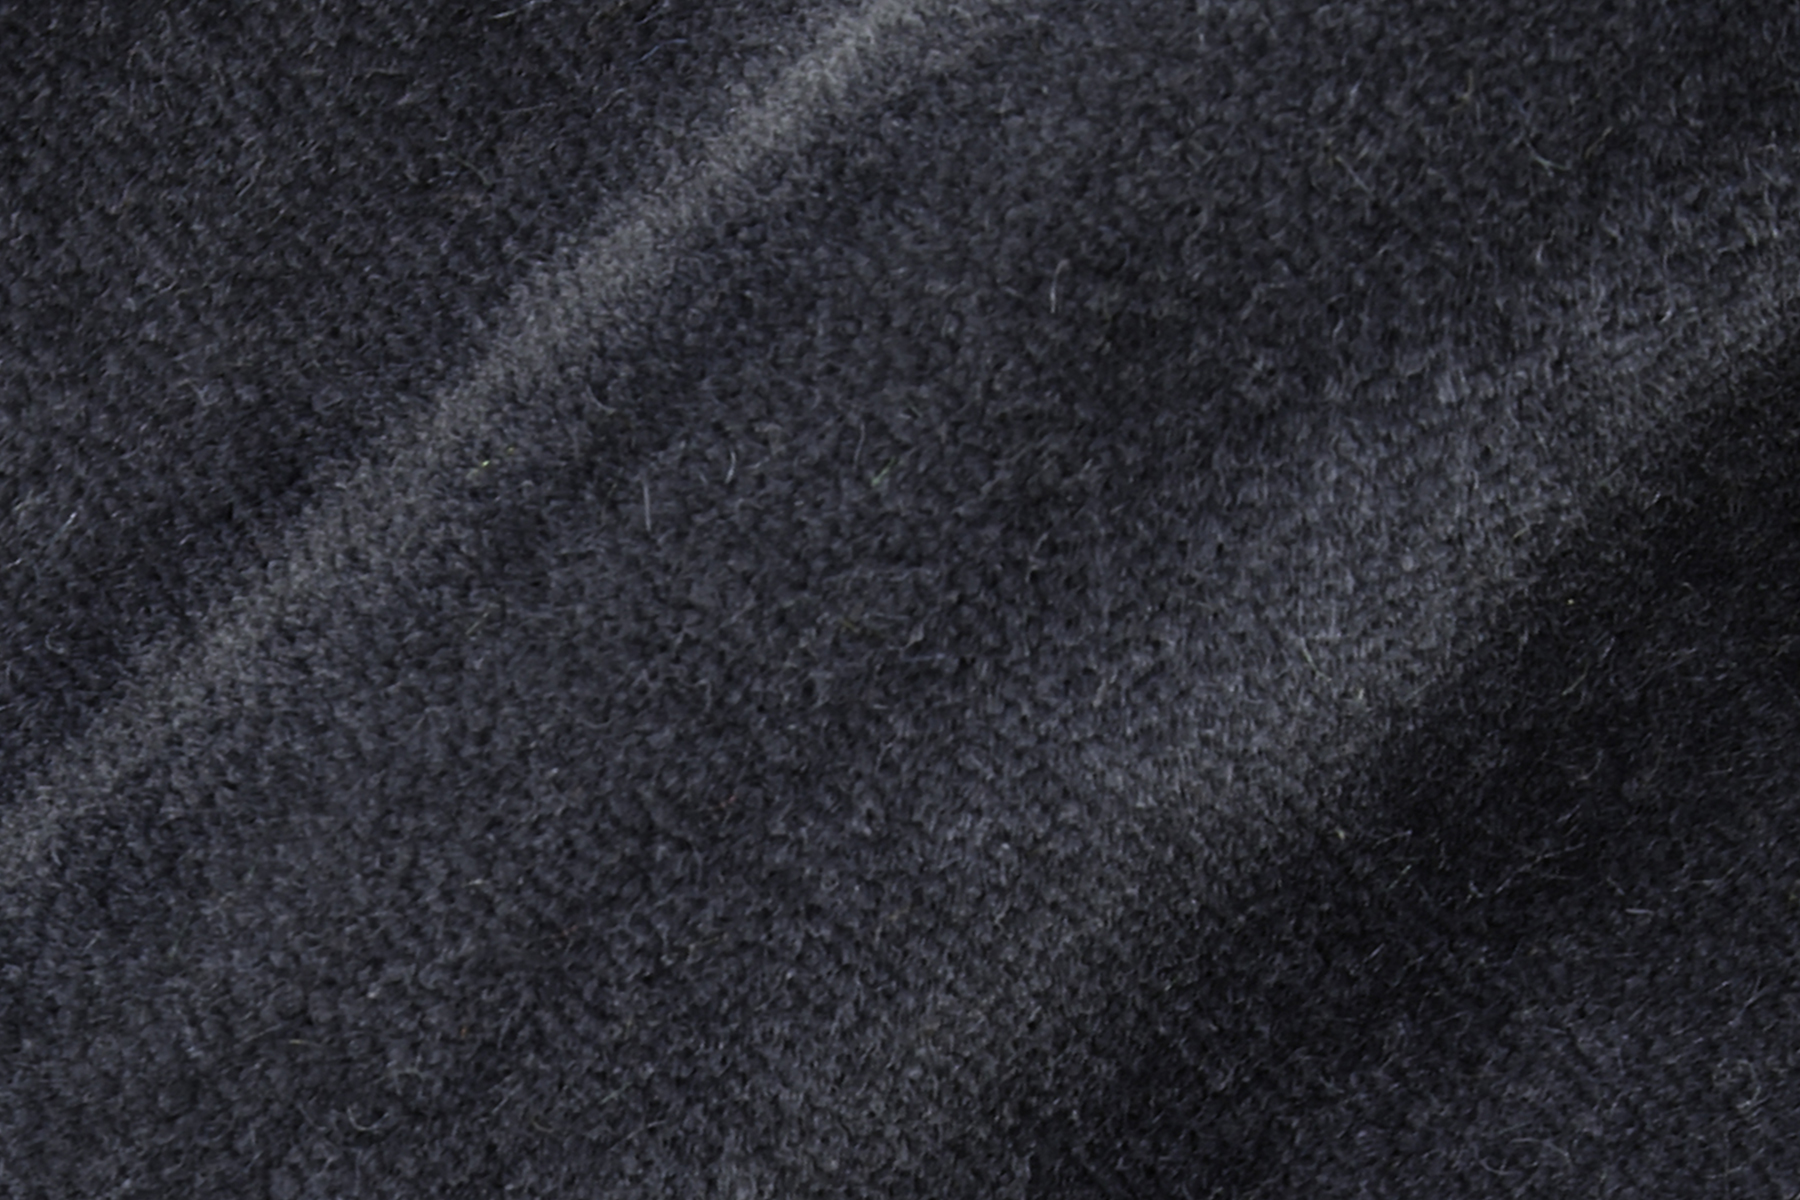 LUX VELVET 0881 BLUE STONE Fabric by KOKET